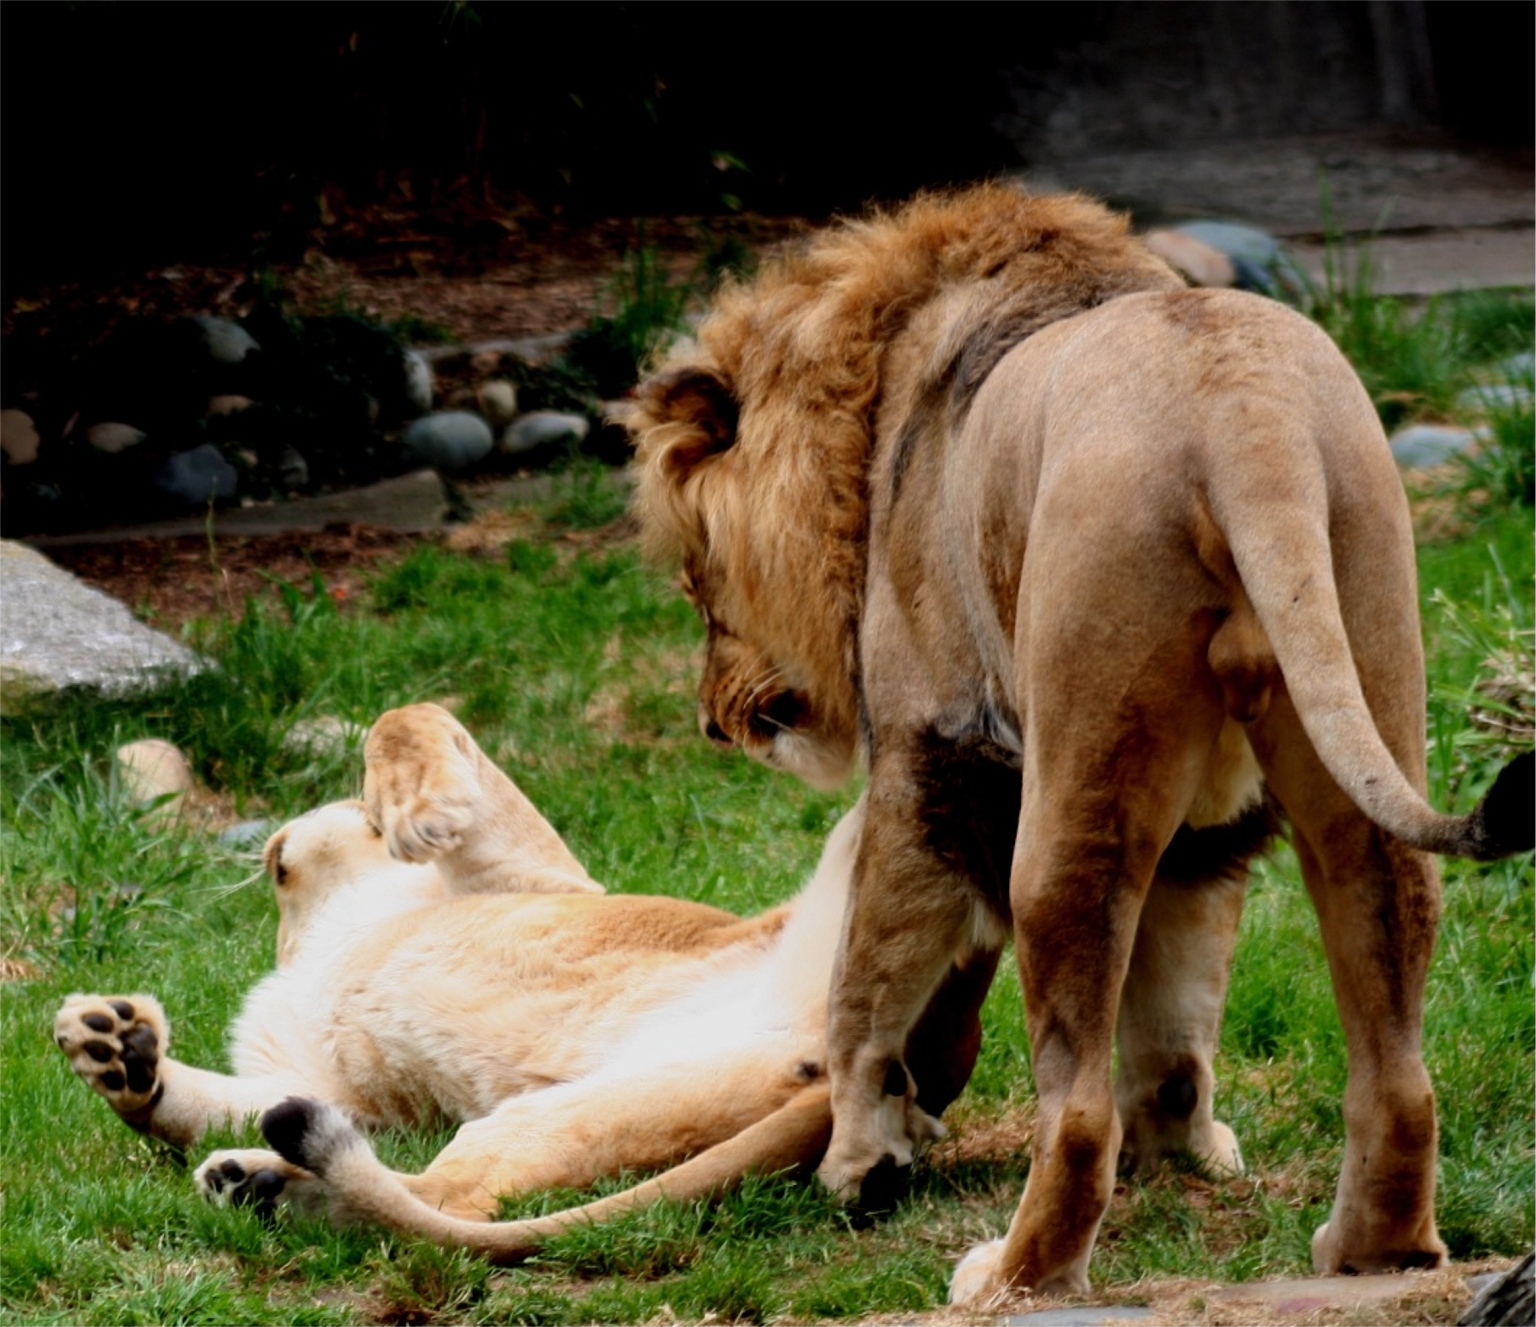 File:Lions in love 2.JPG - Wikimedia Commons